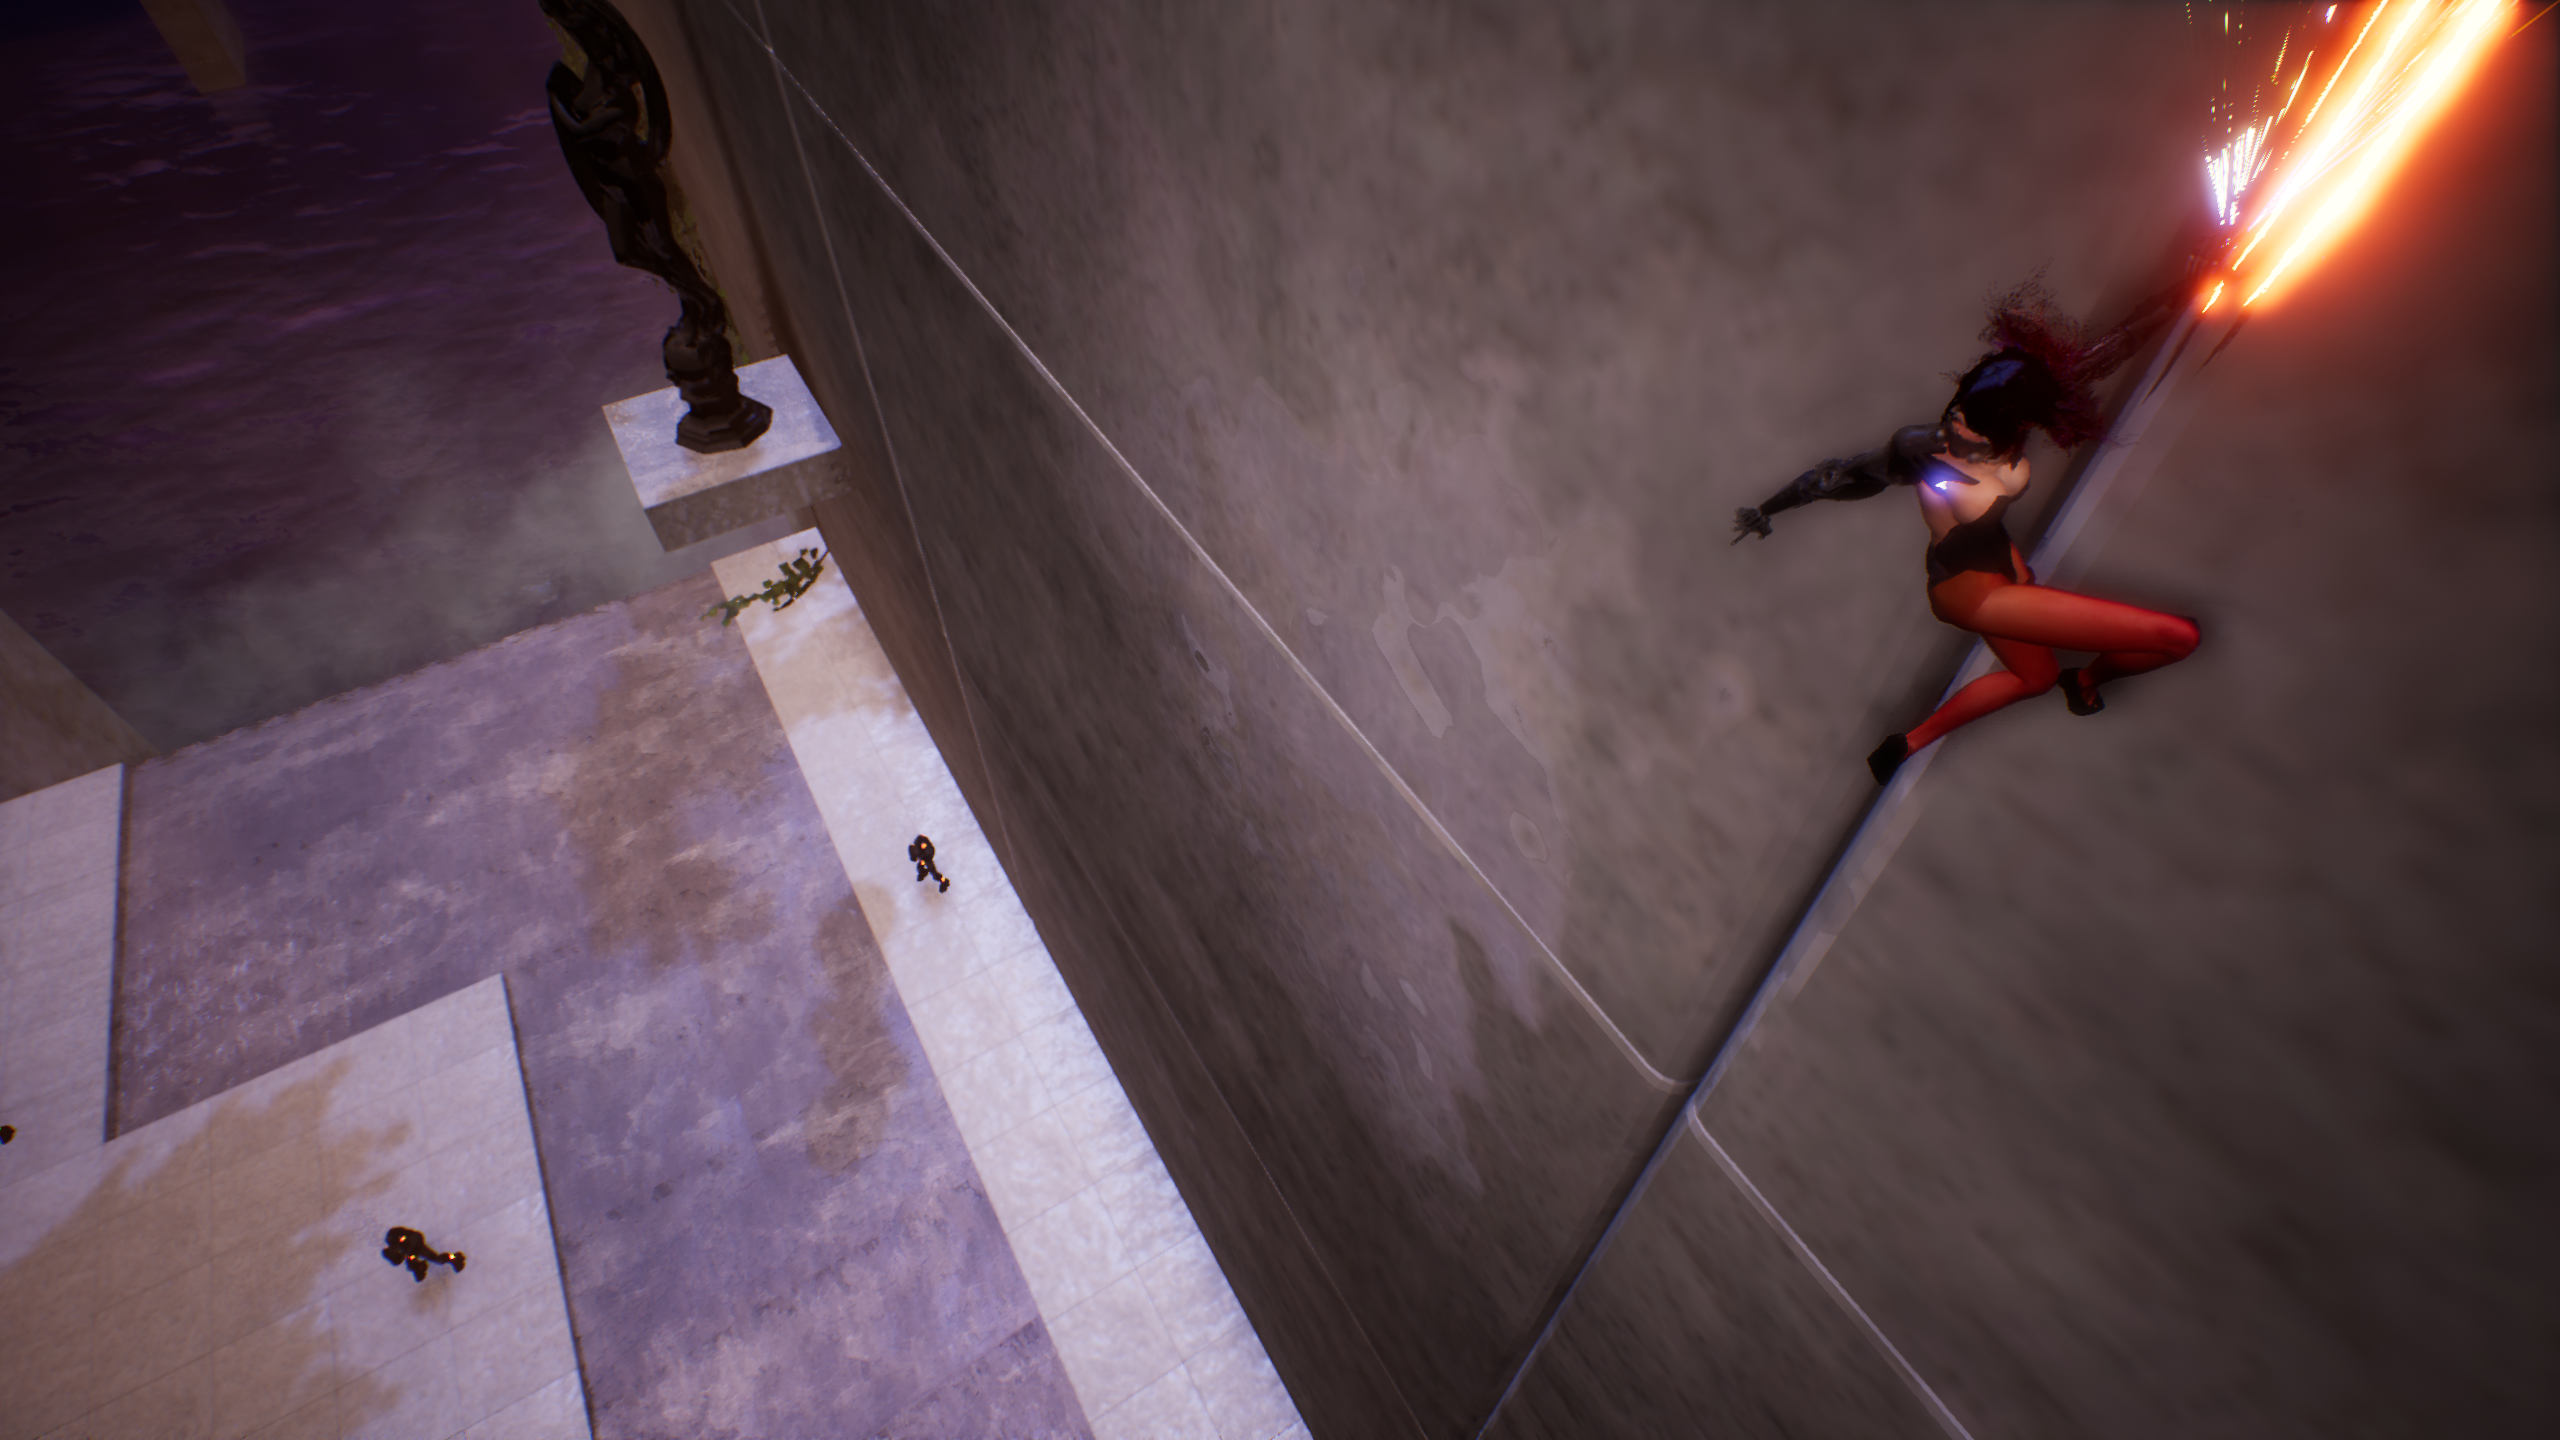 Itch_IO_Wall_Slide_Shoot_Grab_St.png